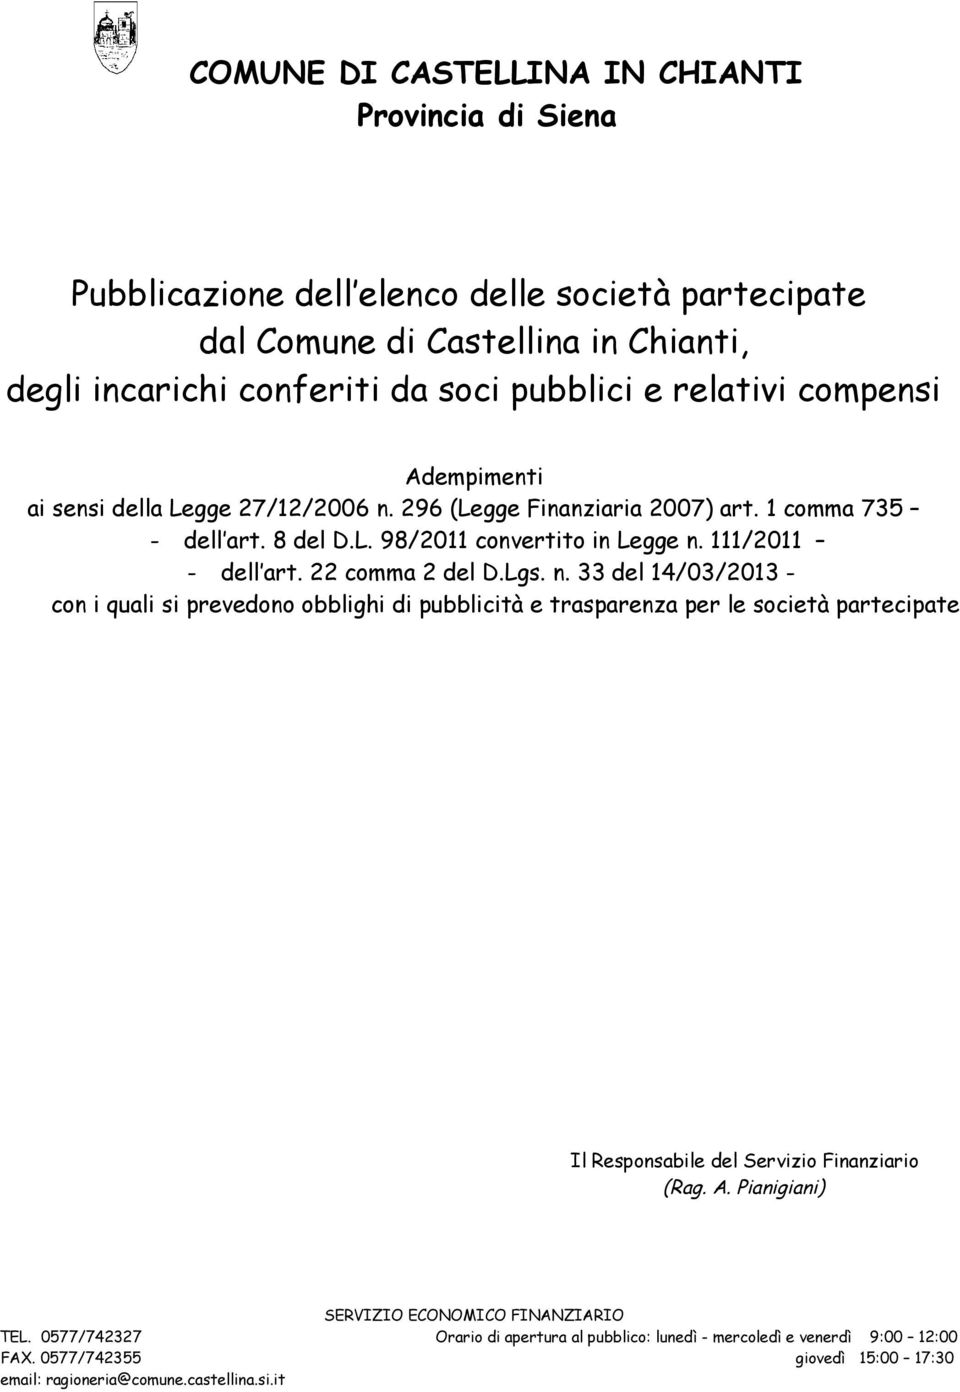 1 comma 735 - dell art. 8 del D.L. 98/2011 convertito in Legge n.